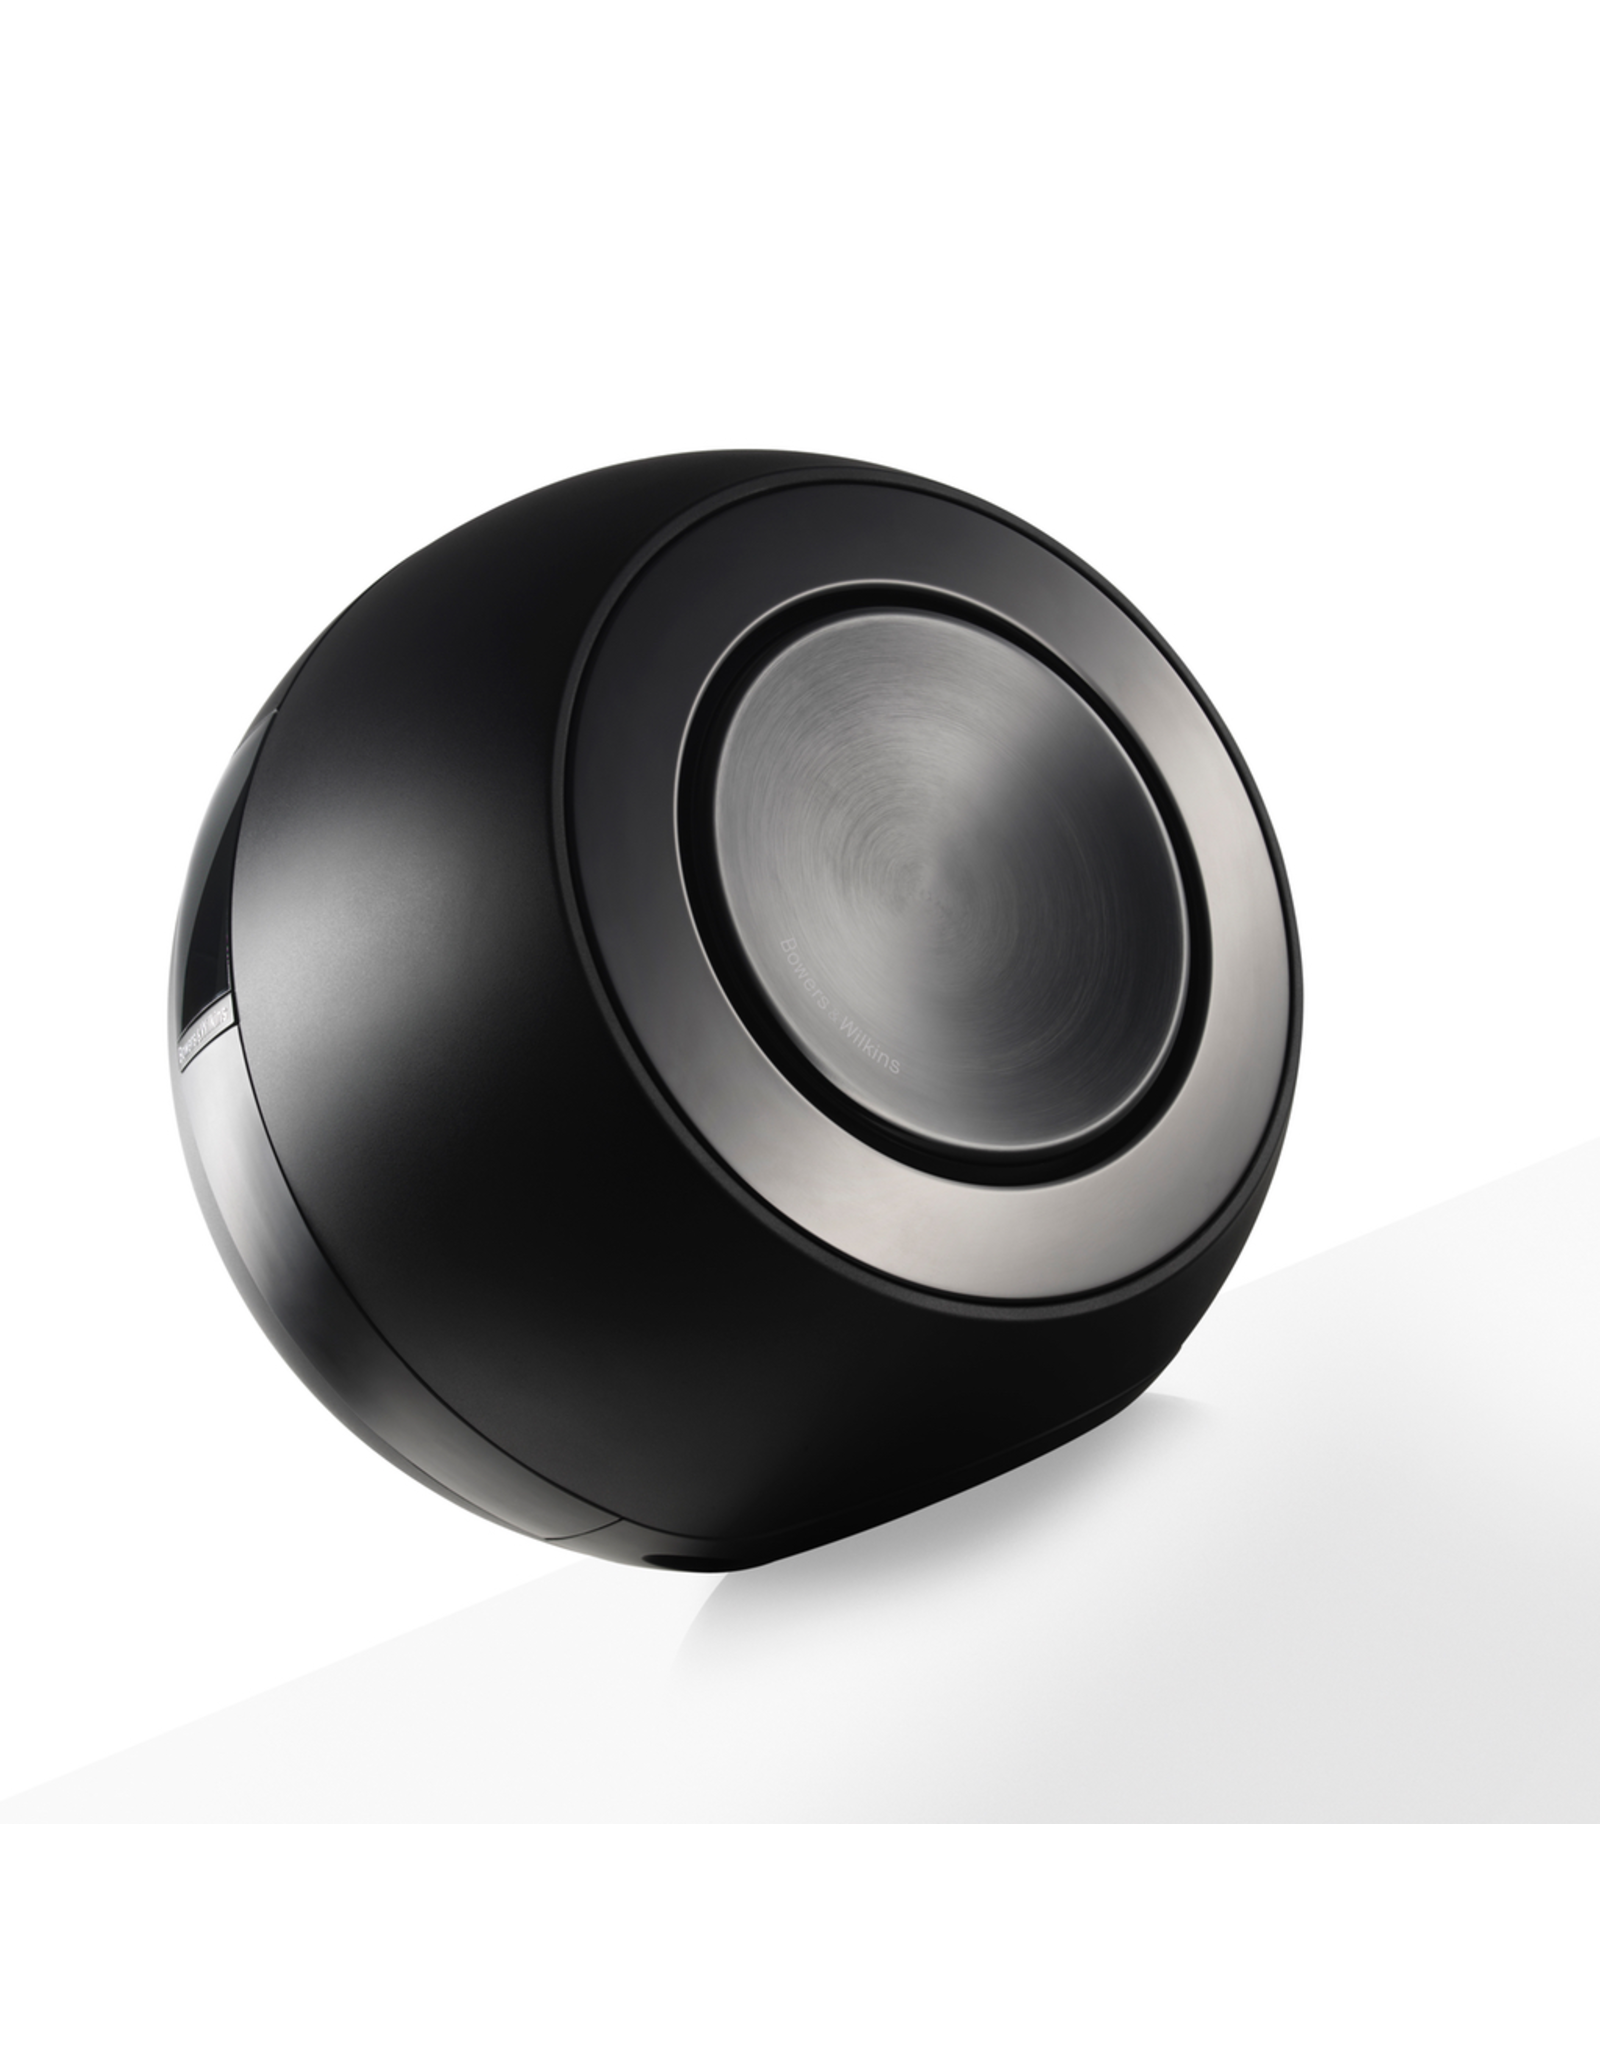 BOWERS & WILKINS B&W PV1D Subwoofer